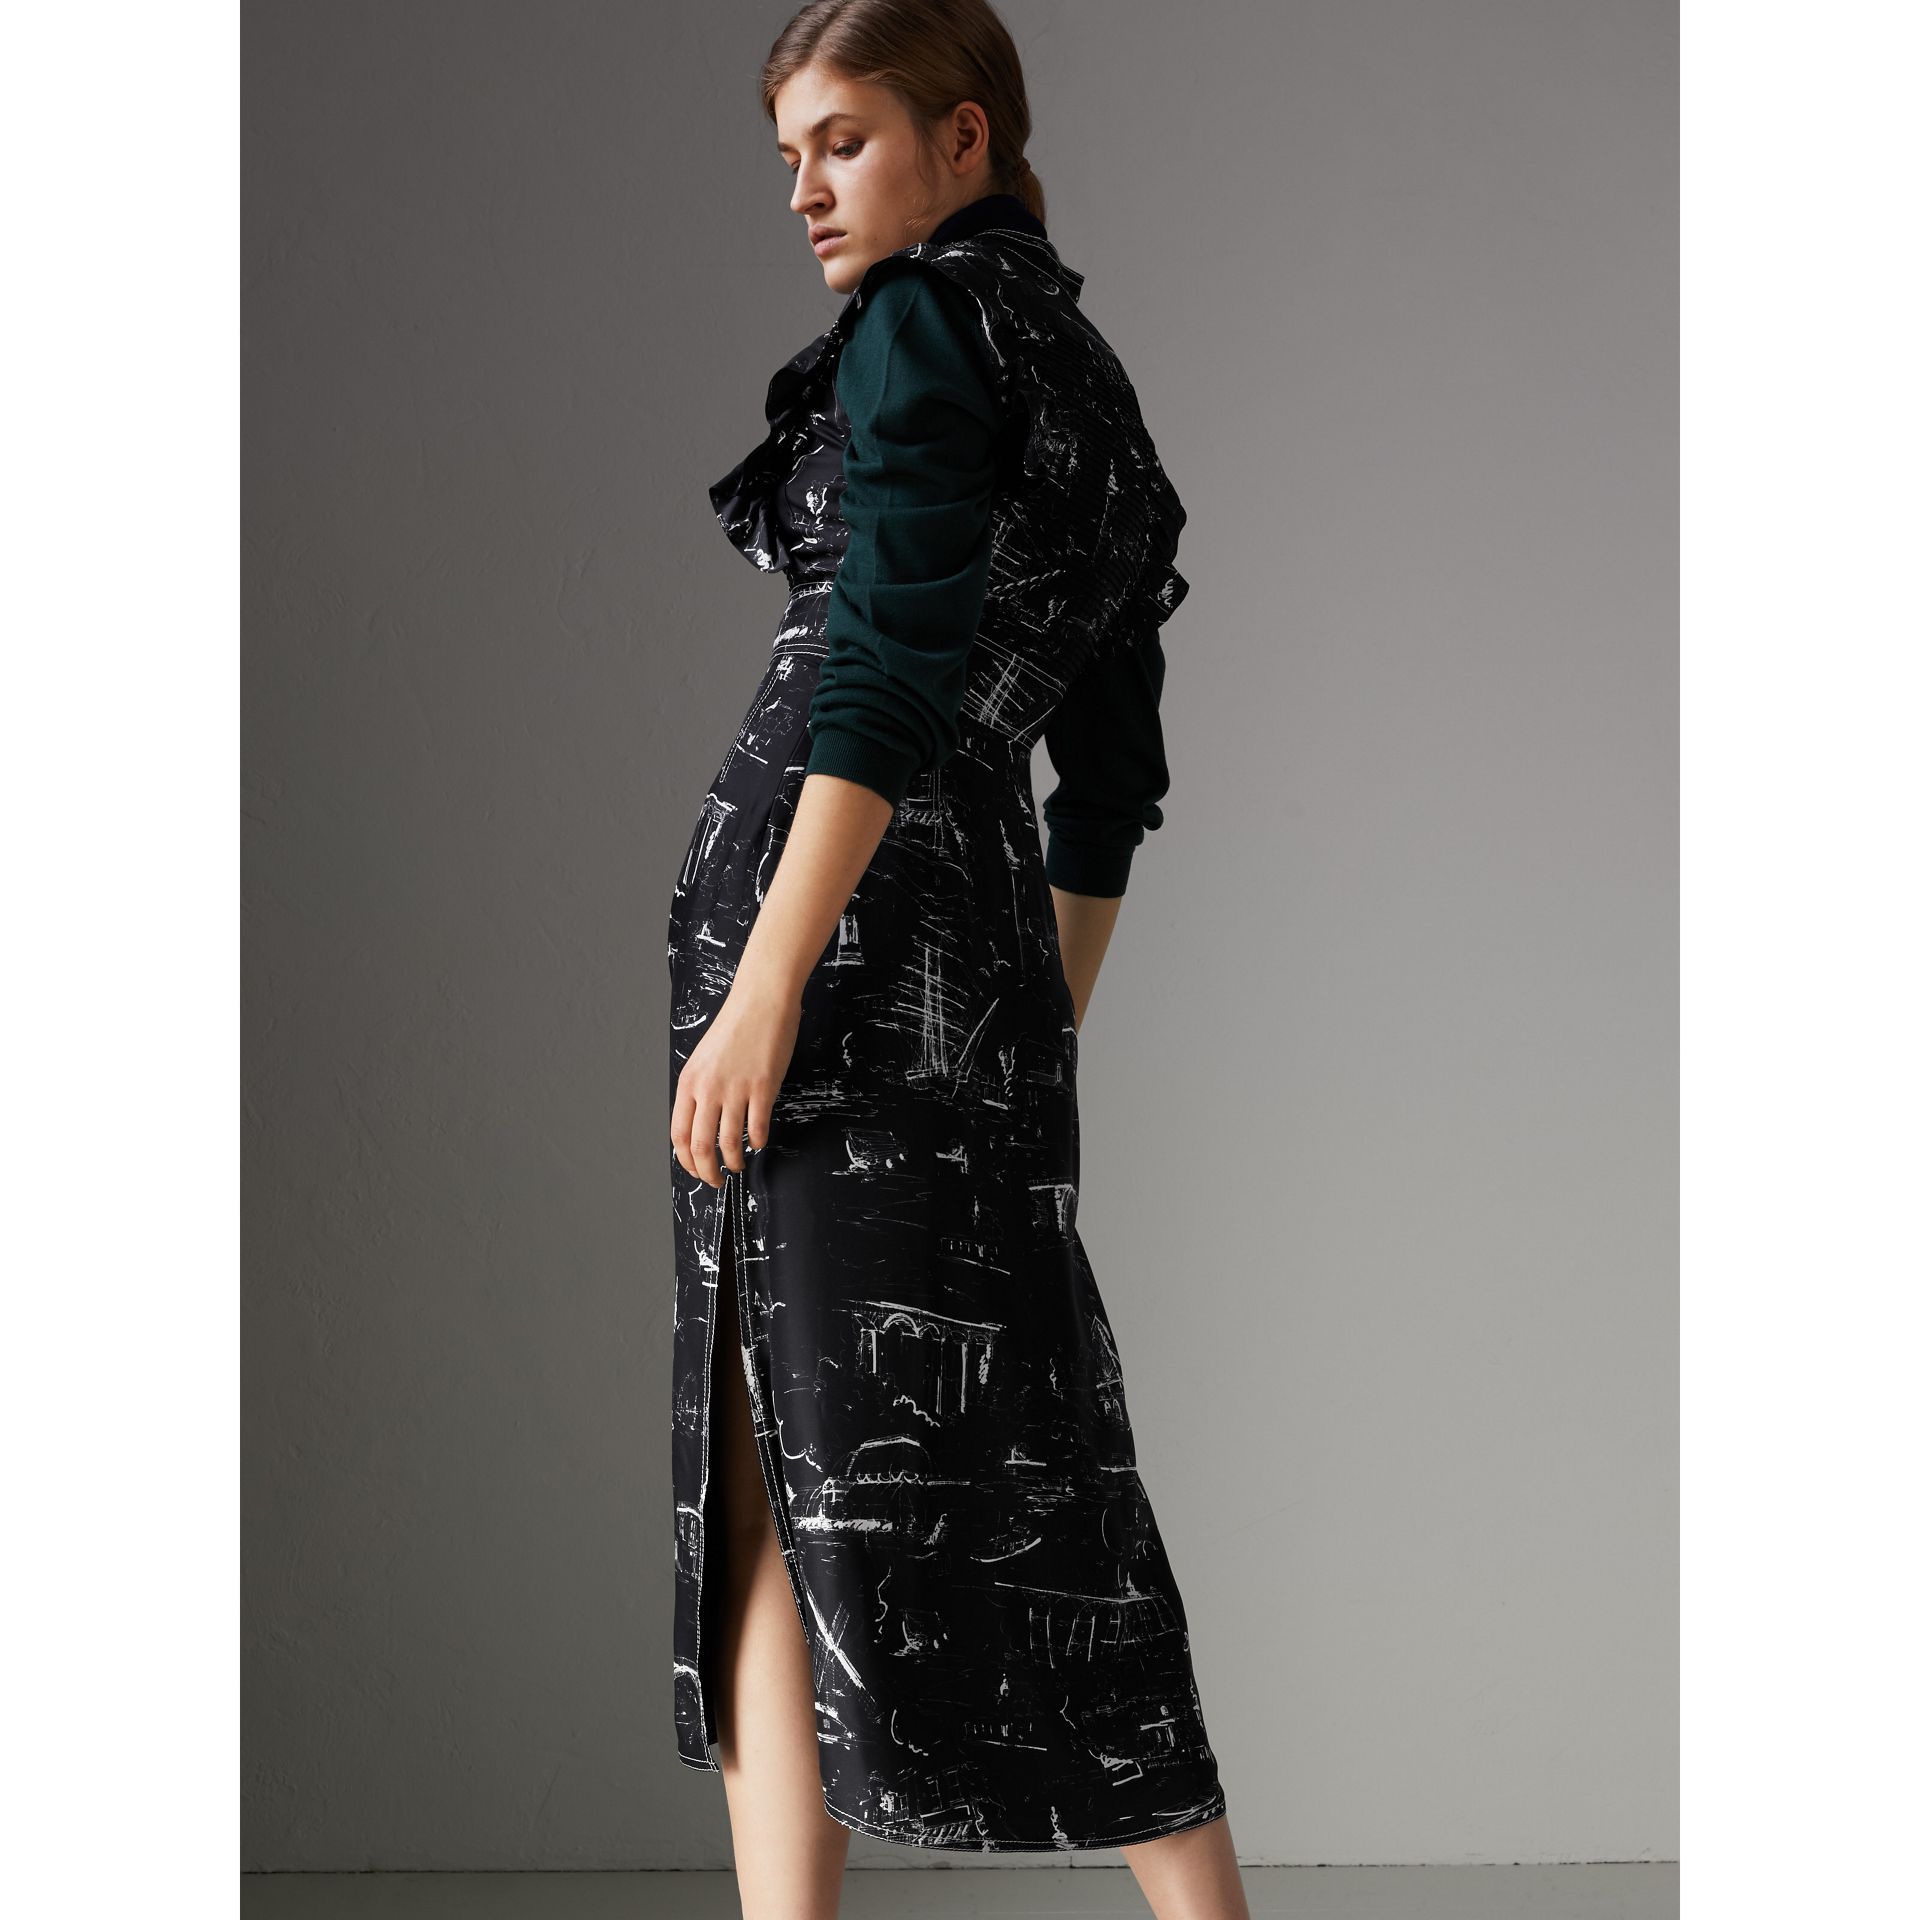 Ruffle Detail Landmark Print Silk Dress in Black - Women | Burberry United States - gallery image 2